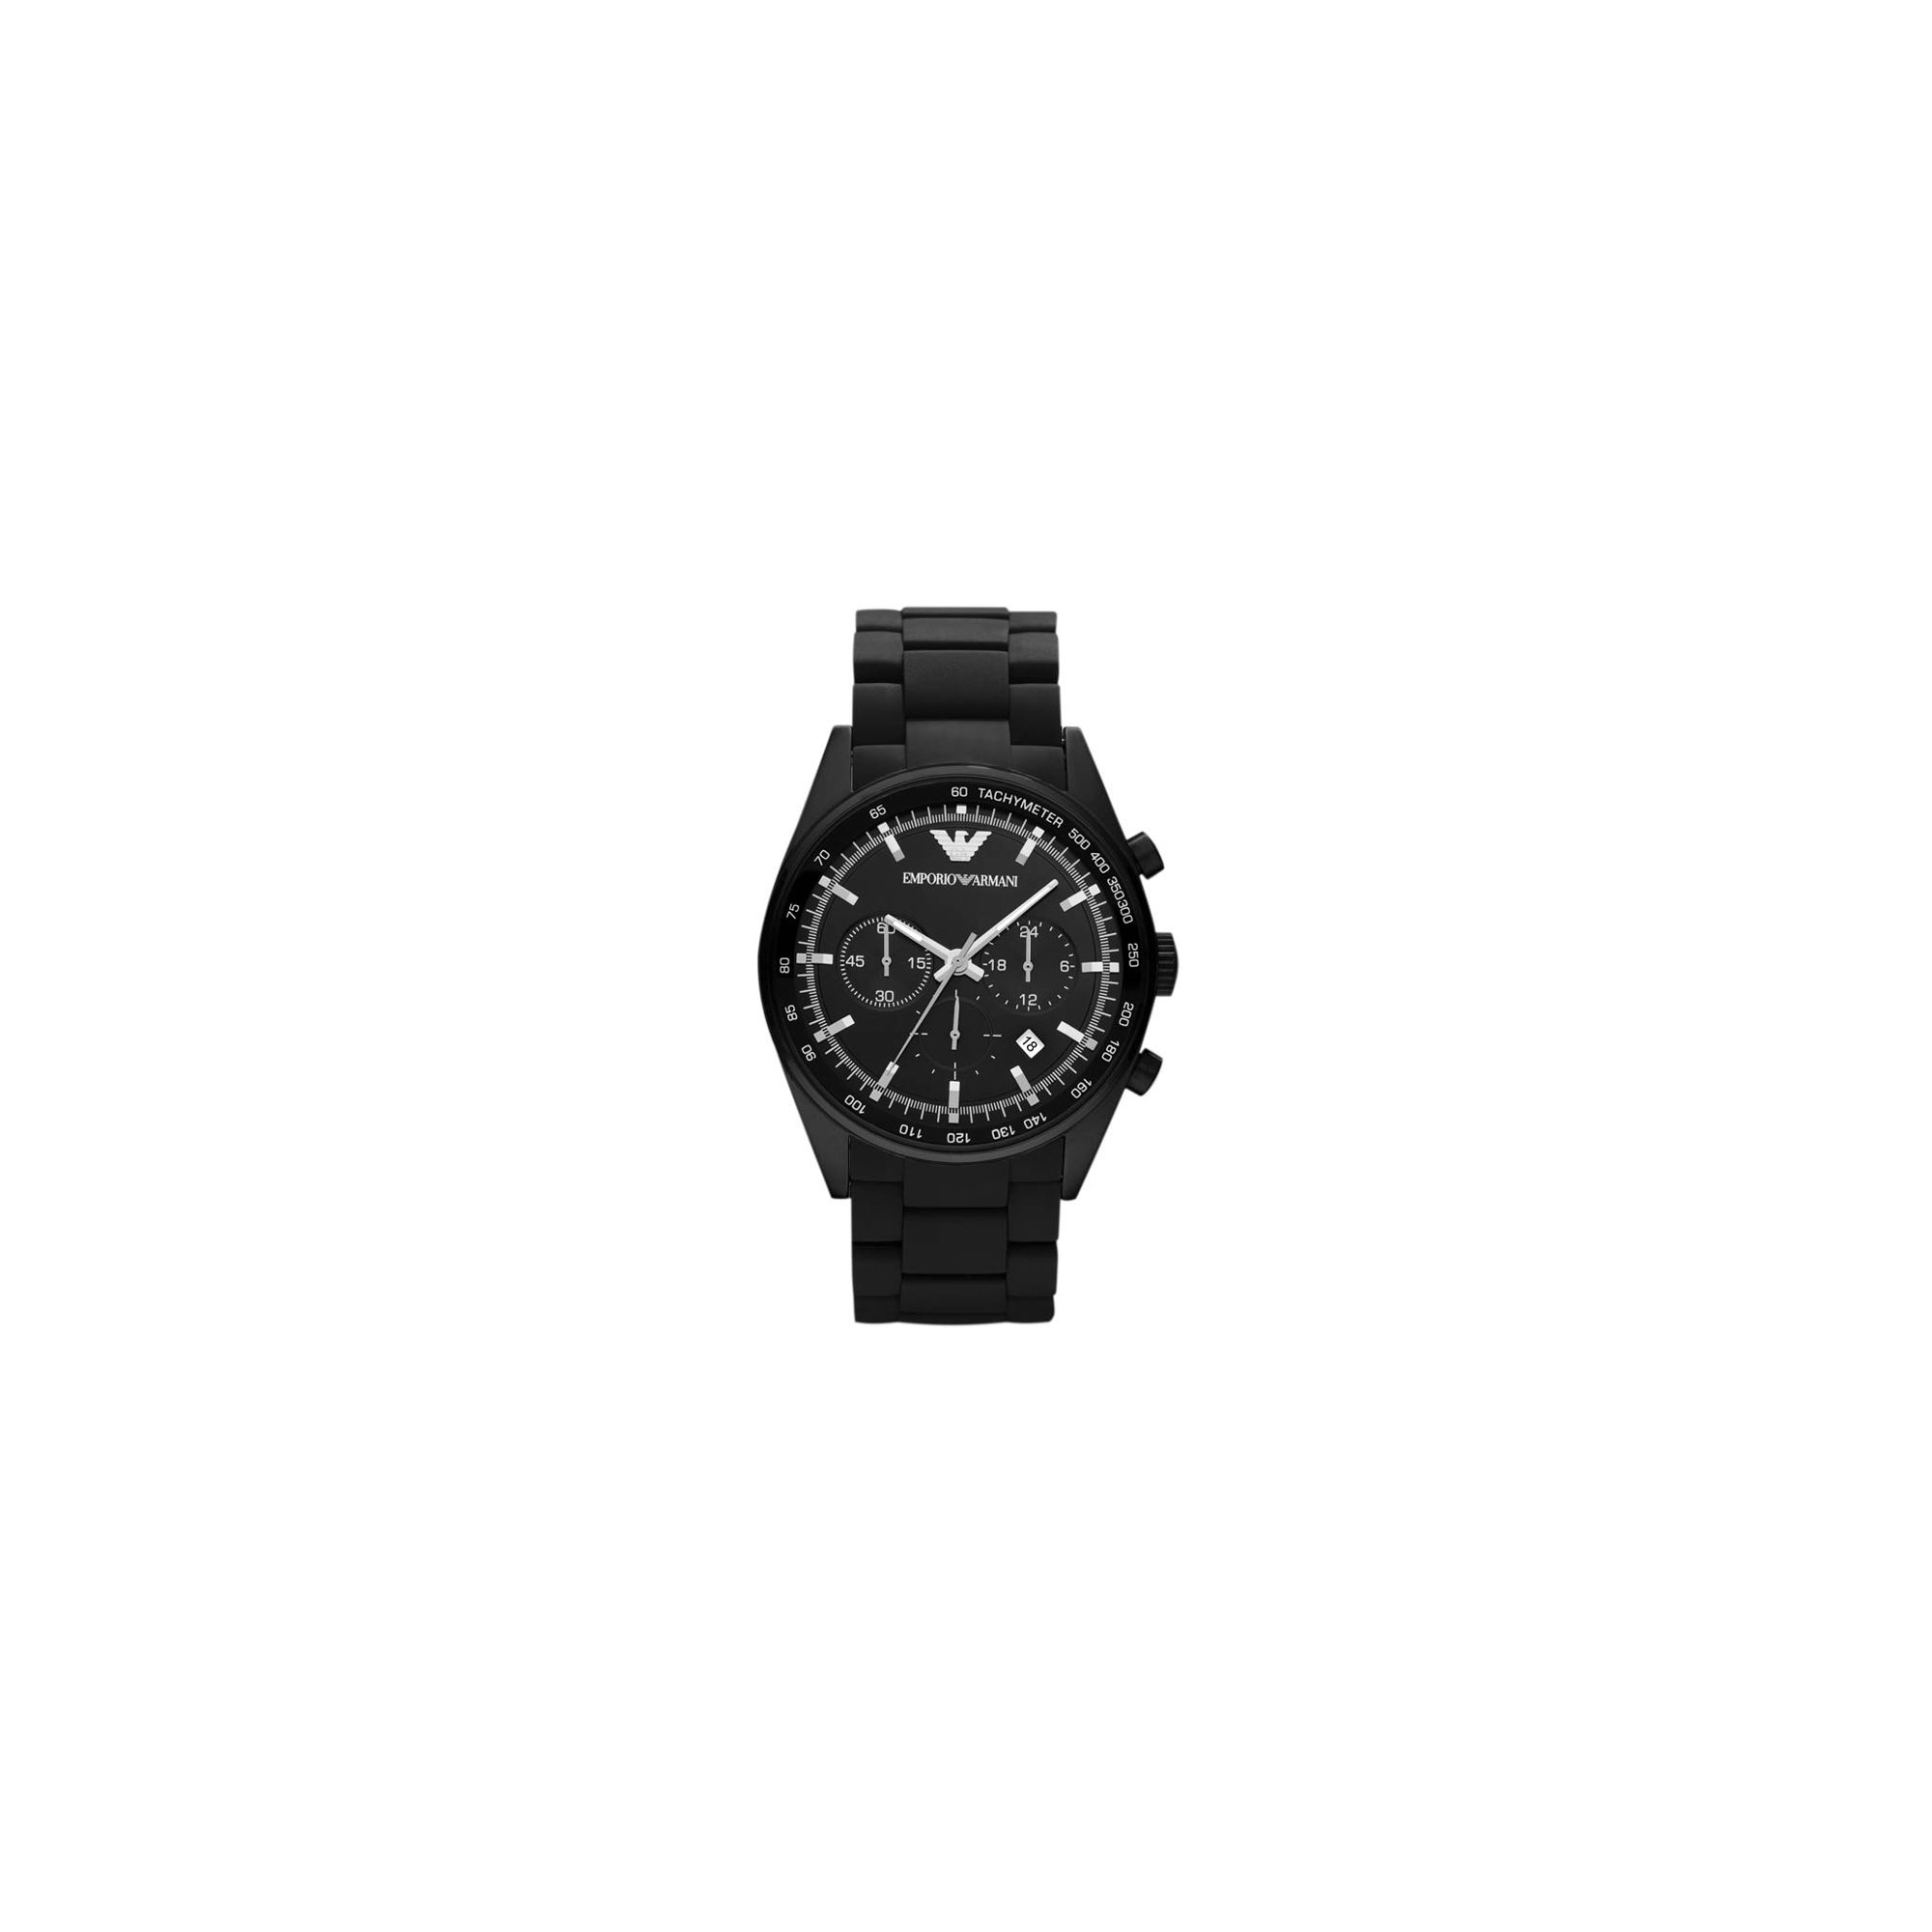 Emporio Armani Black Rubber Strap Chrono Watch AR5981 at Tesco Direct